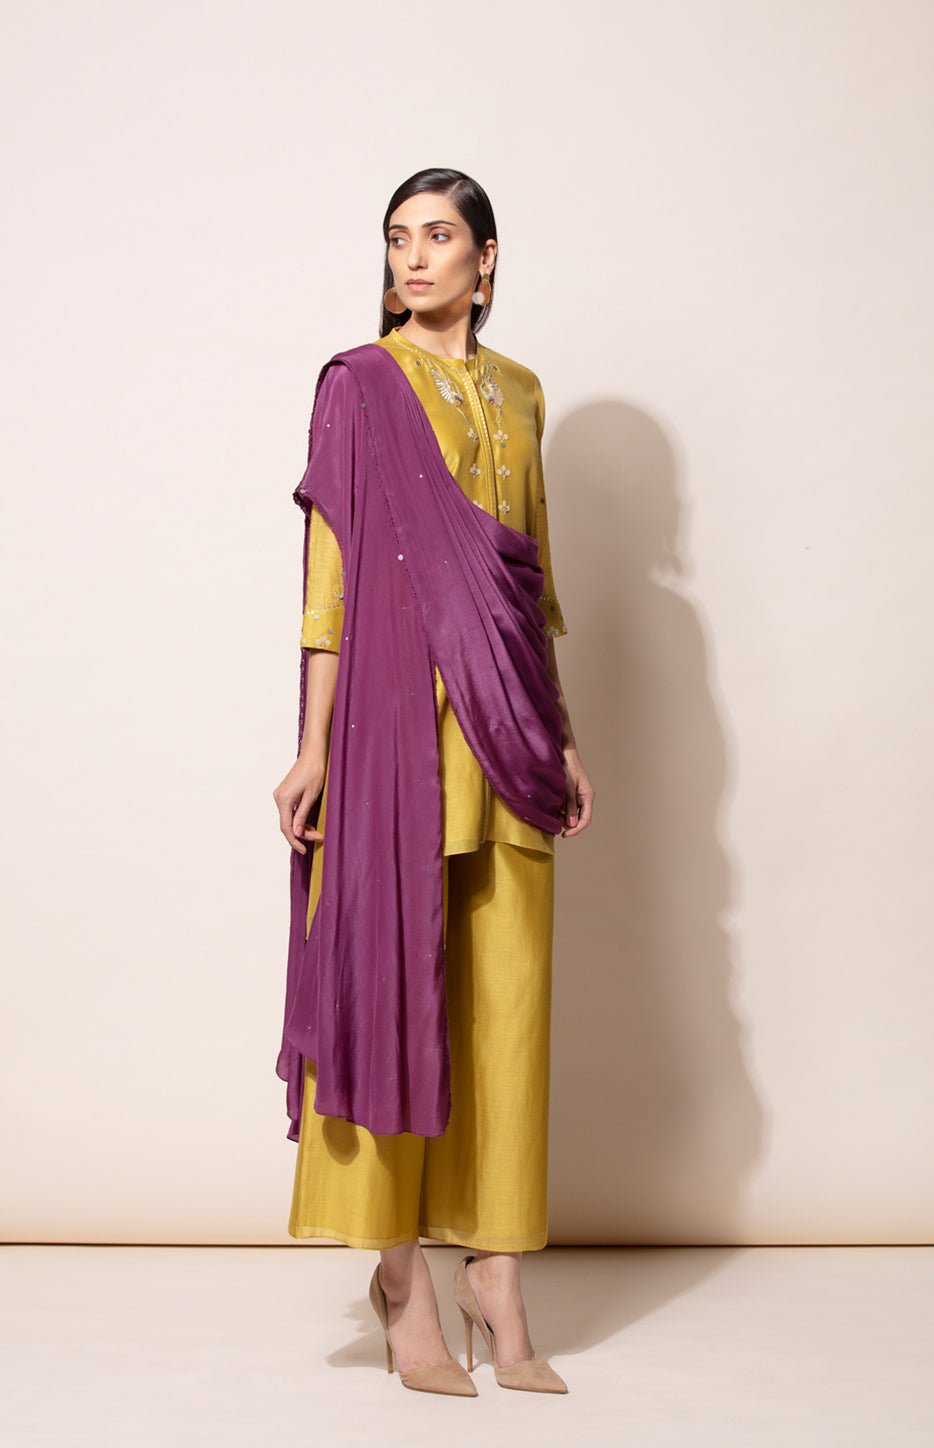 Dirty Mustard Tunic, Palazzo and Deep Purple predraped Dupatta set